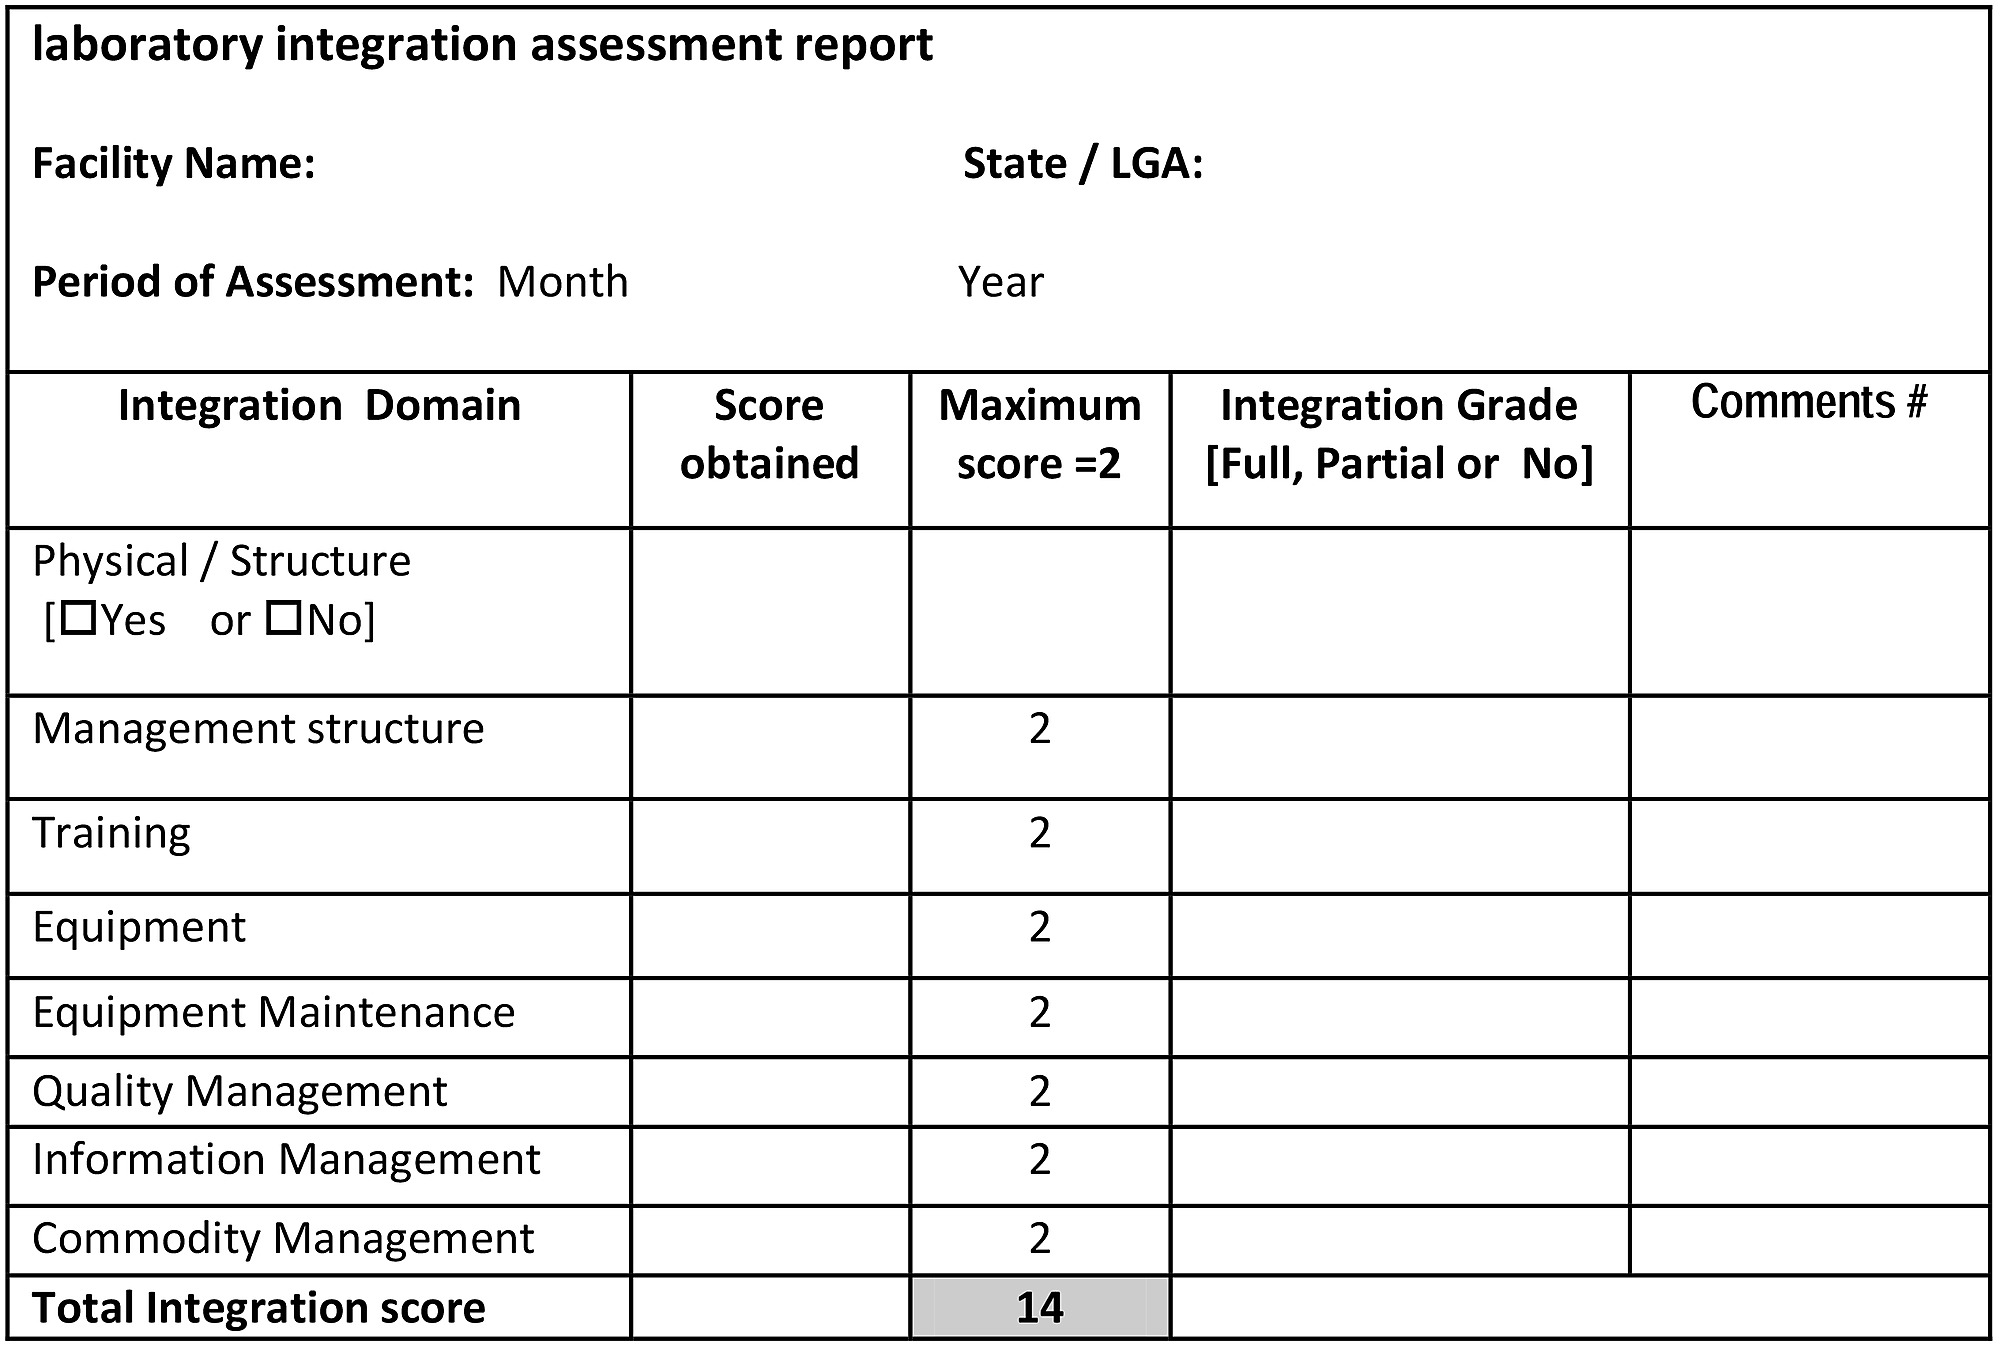 Essment Report Format | Summary Of Laboratory Integration Assessment Report Format